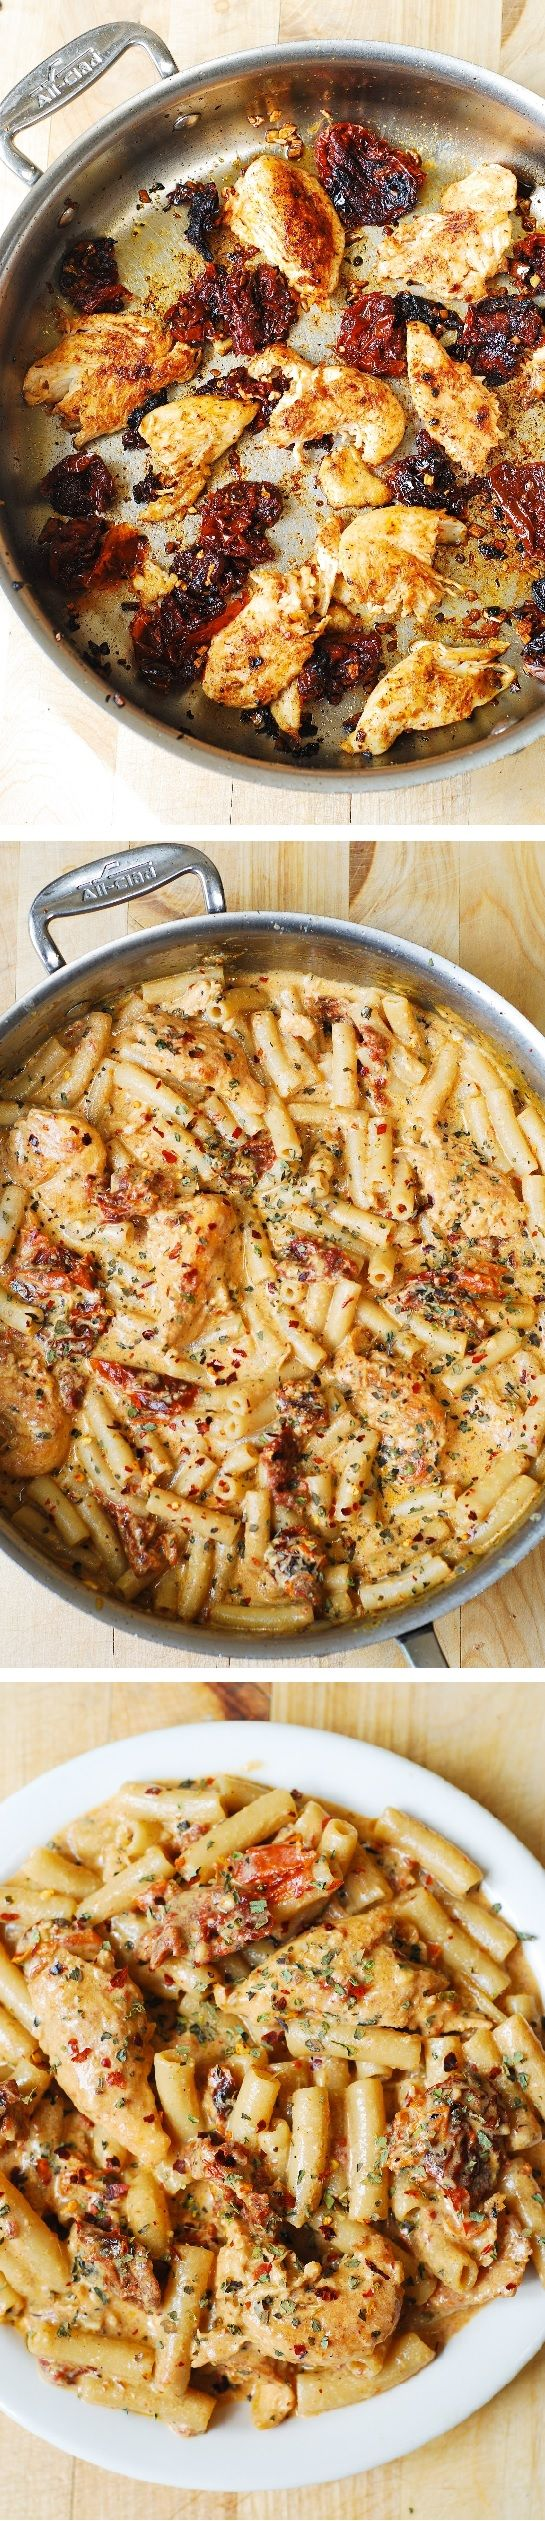 Chicken breast tenderloins sautéed with sun-dried tomatoes and penne pasta in a creamy mozzarella cheese sauce. (Made by @juliasalbum )